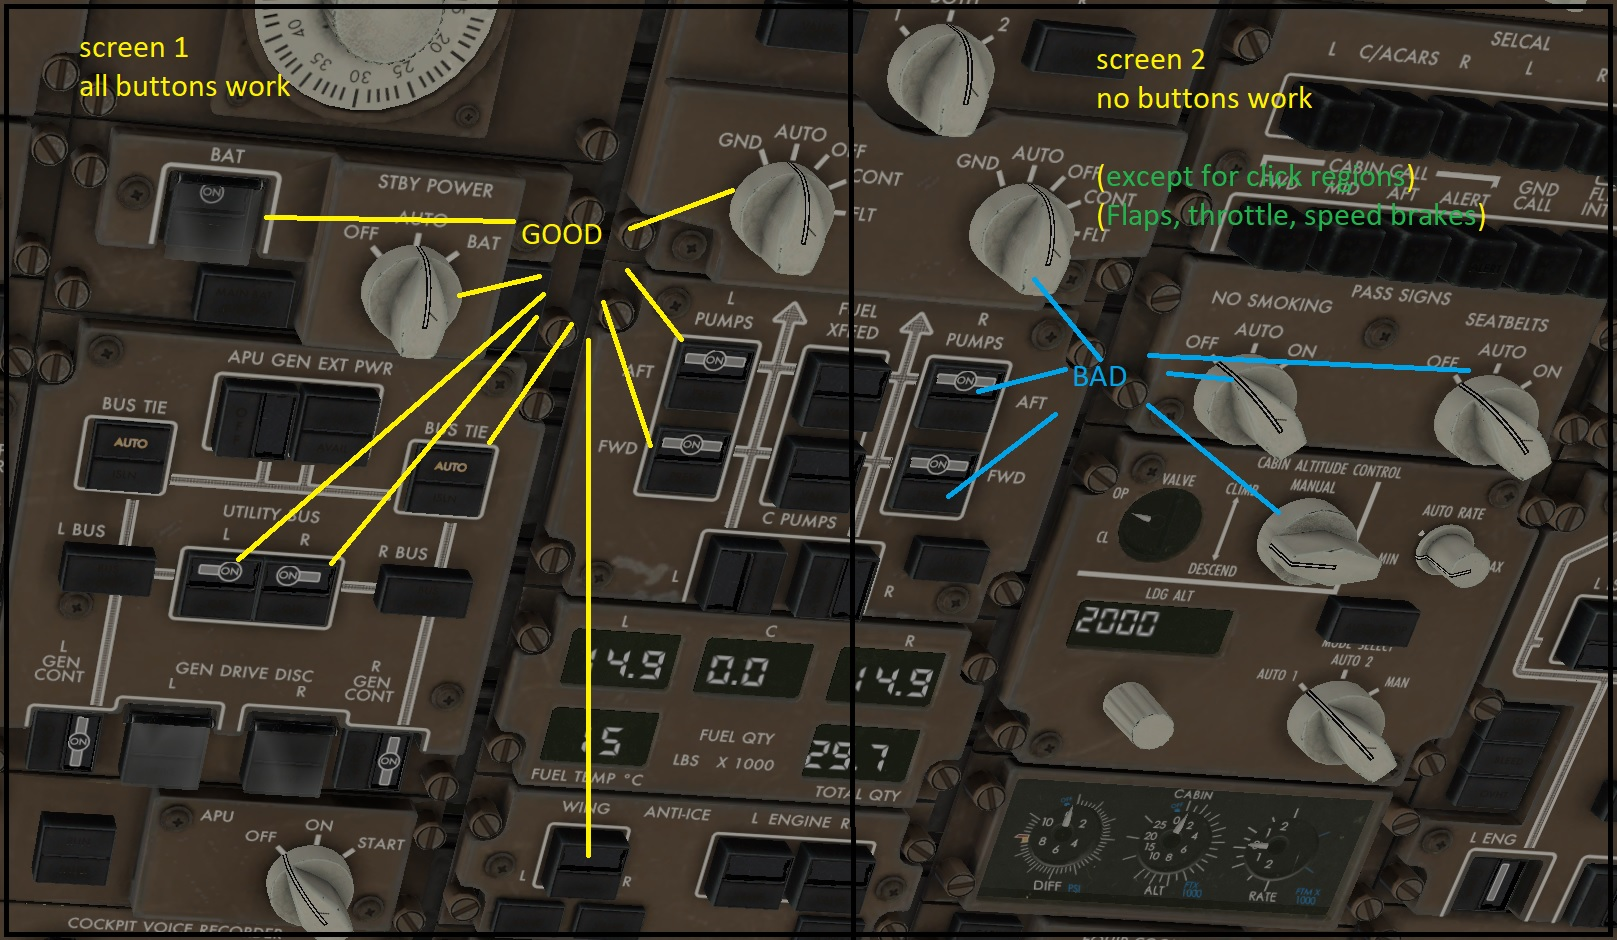 xplane mouse and touch does not click.